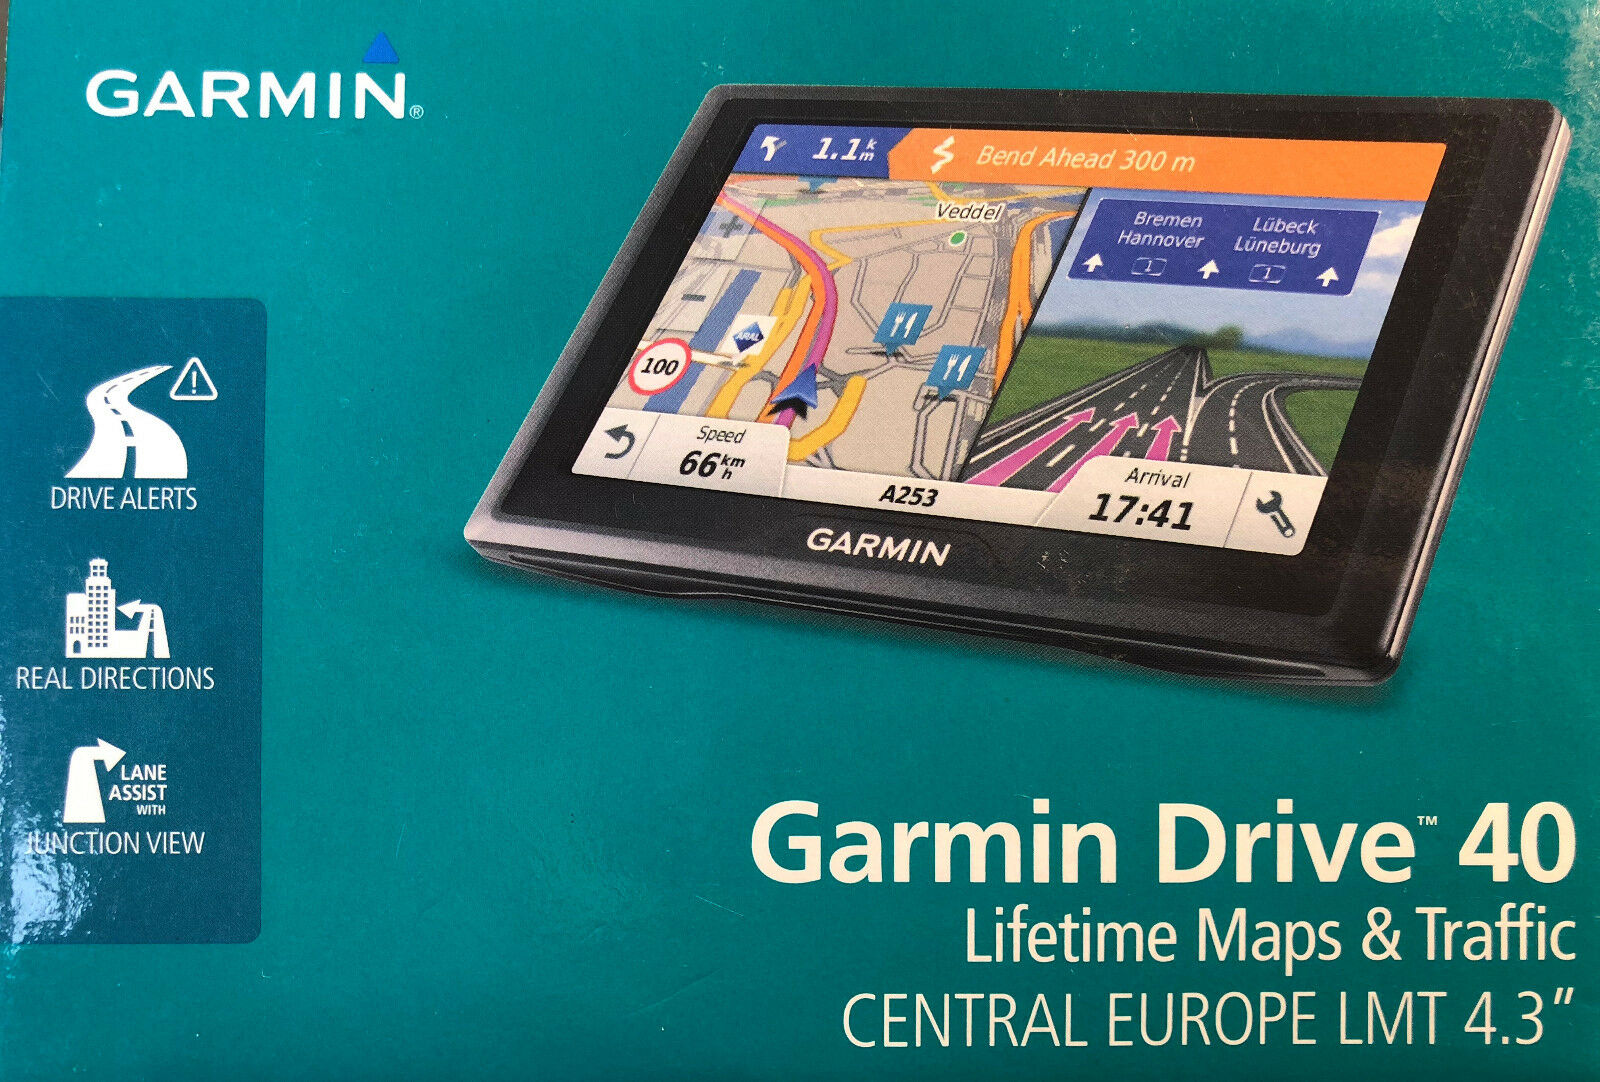 garmin drive 40lmt ce navigationsger t 10 9 cm 4 3 zoll display zentraleuropa eur 94 00. Black Bedroom Furniture Sets. Home Design Ideas